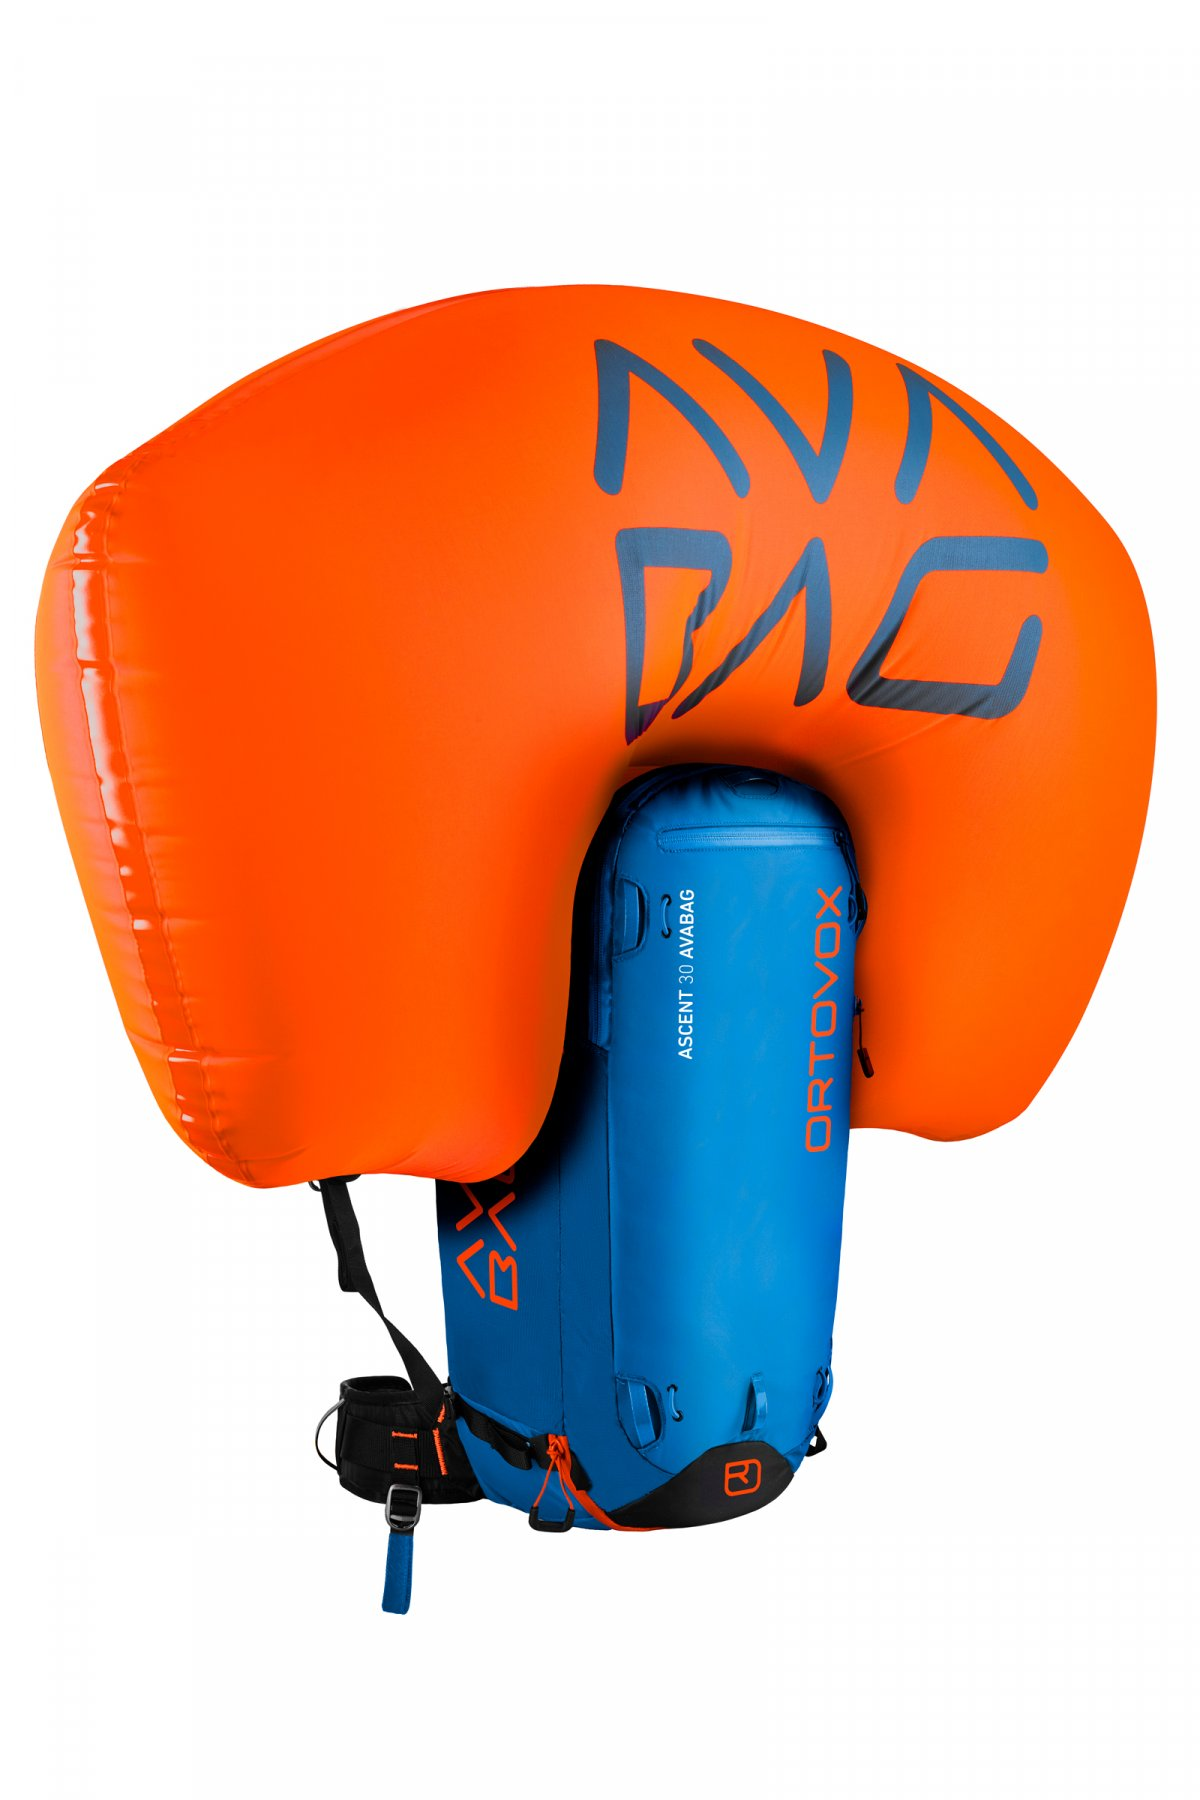 Safety Blue - Inflated Airbag - Ortovox Ascent 30 Avabag